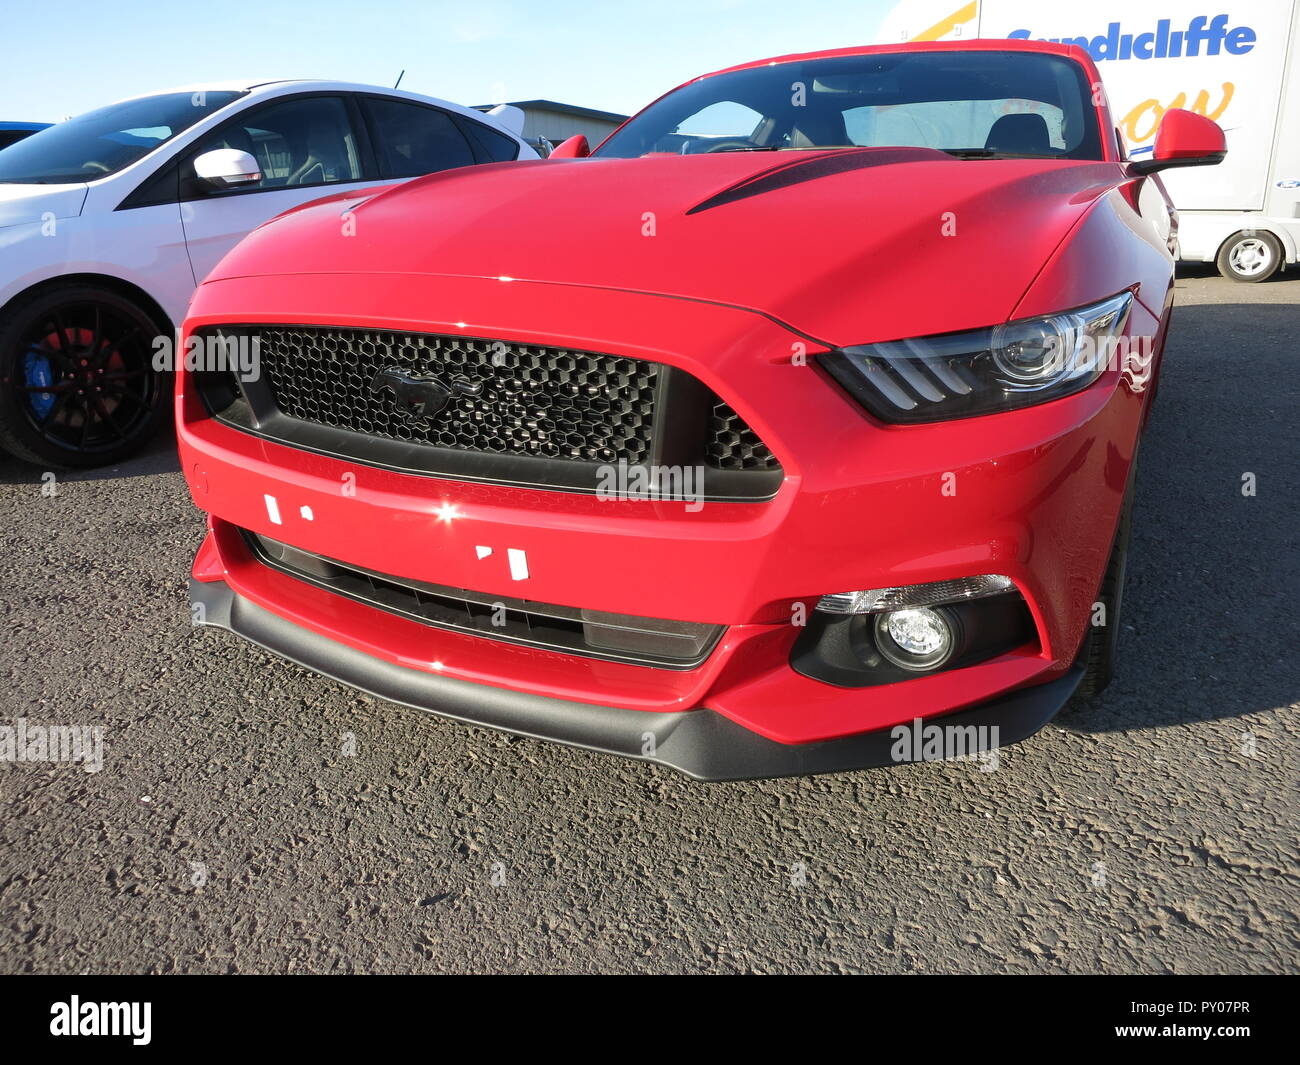 Ford Mustang 5.0 litre liter 2015 Model year shown at donnington park race circuit at the RS owners club national day - showing front view - Stock Image